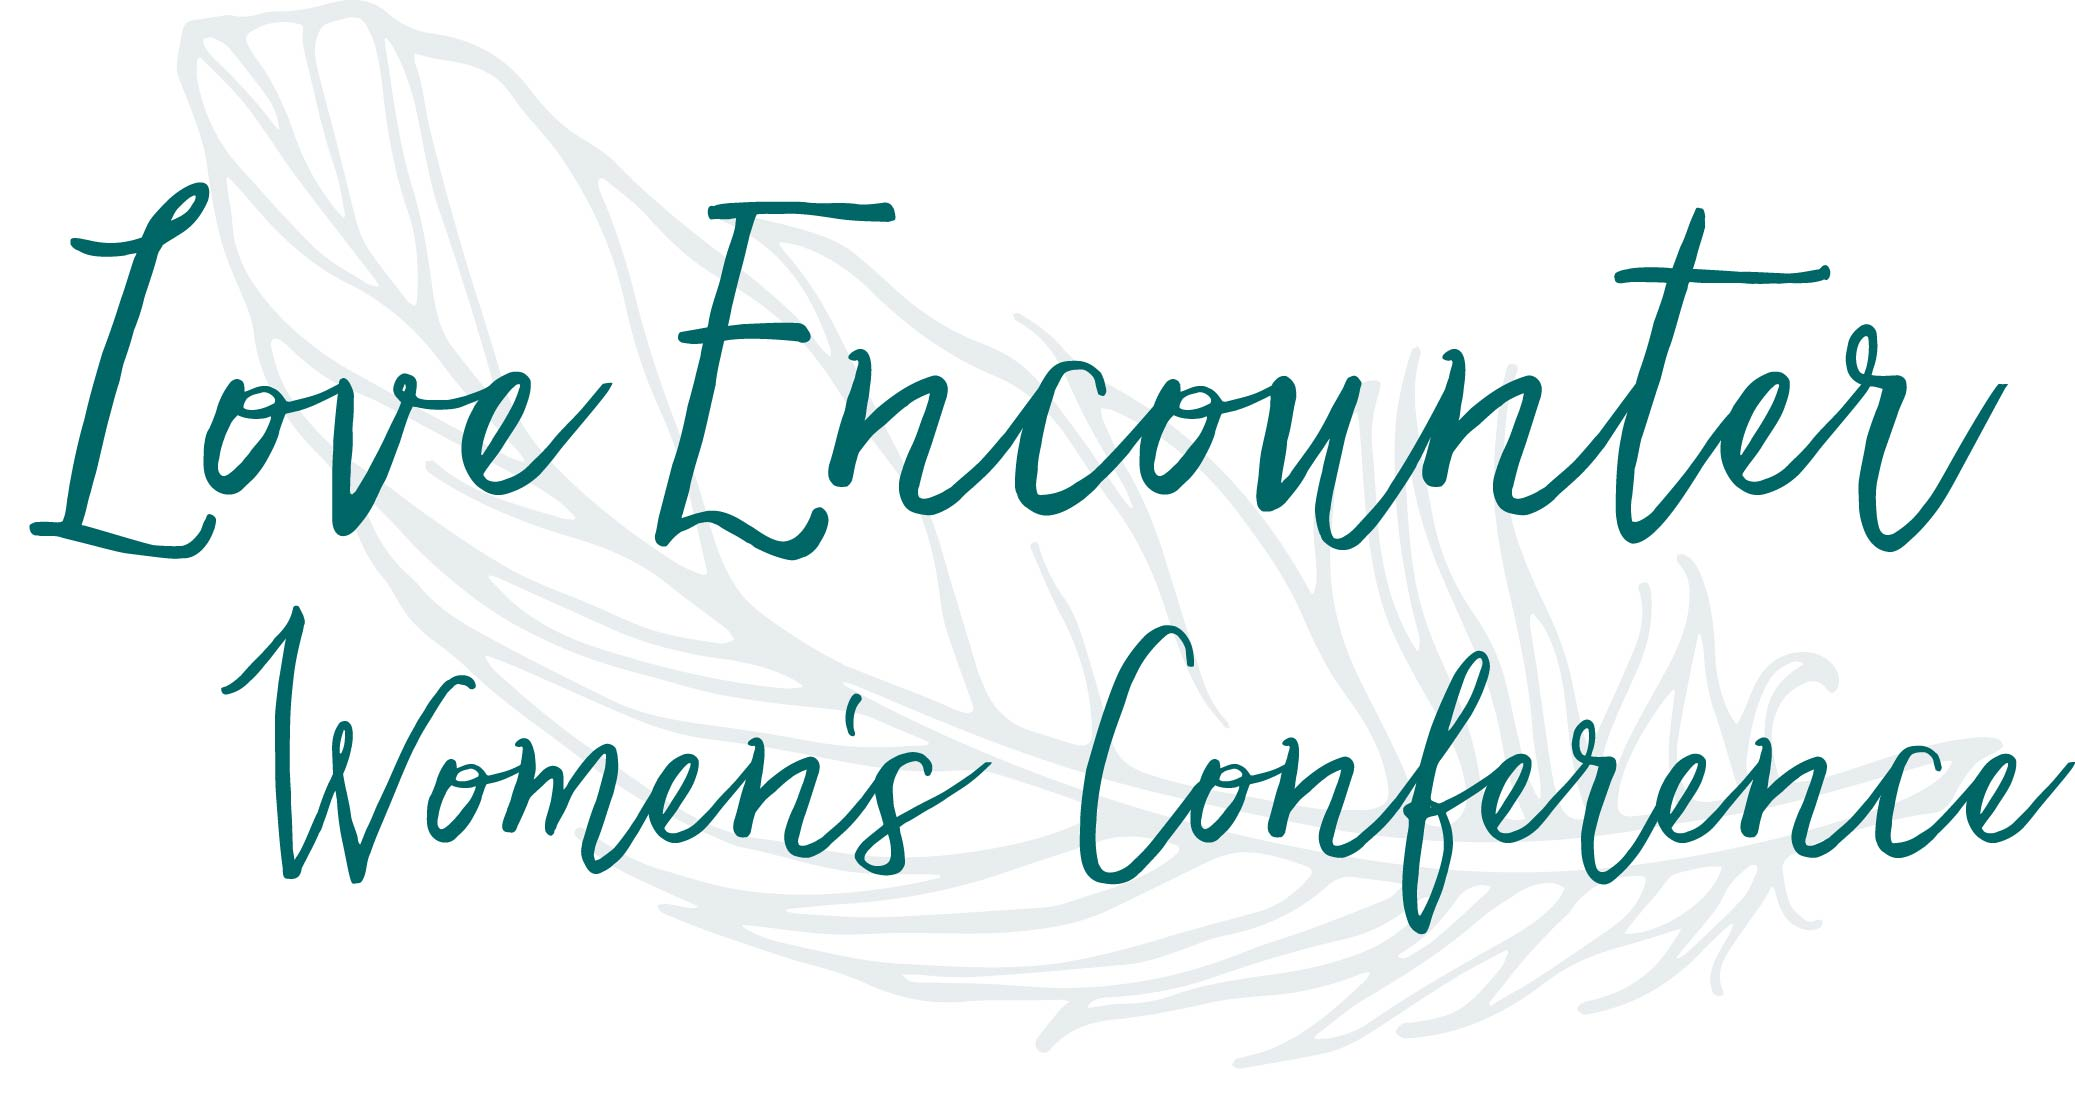 2017 Women's Conference